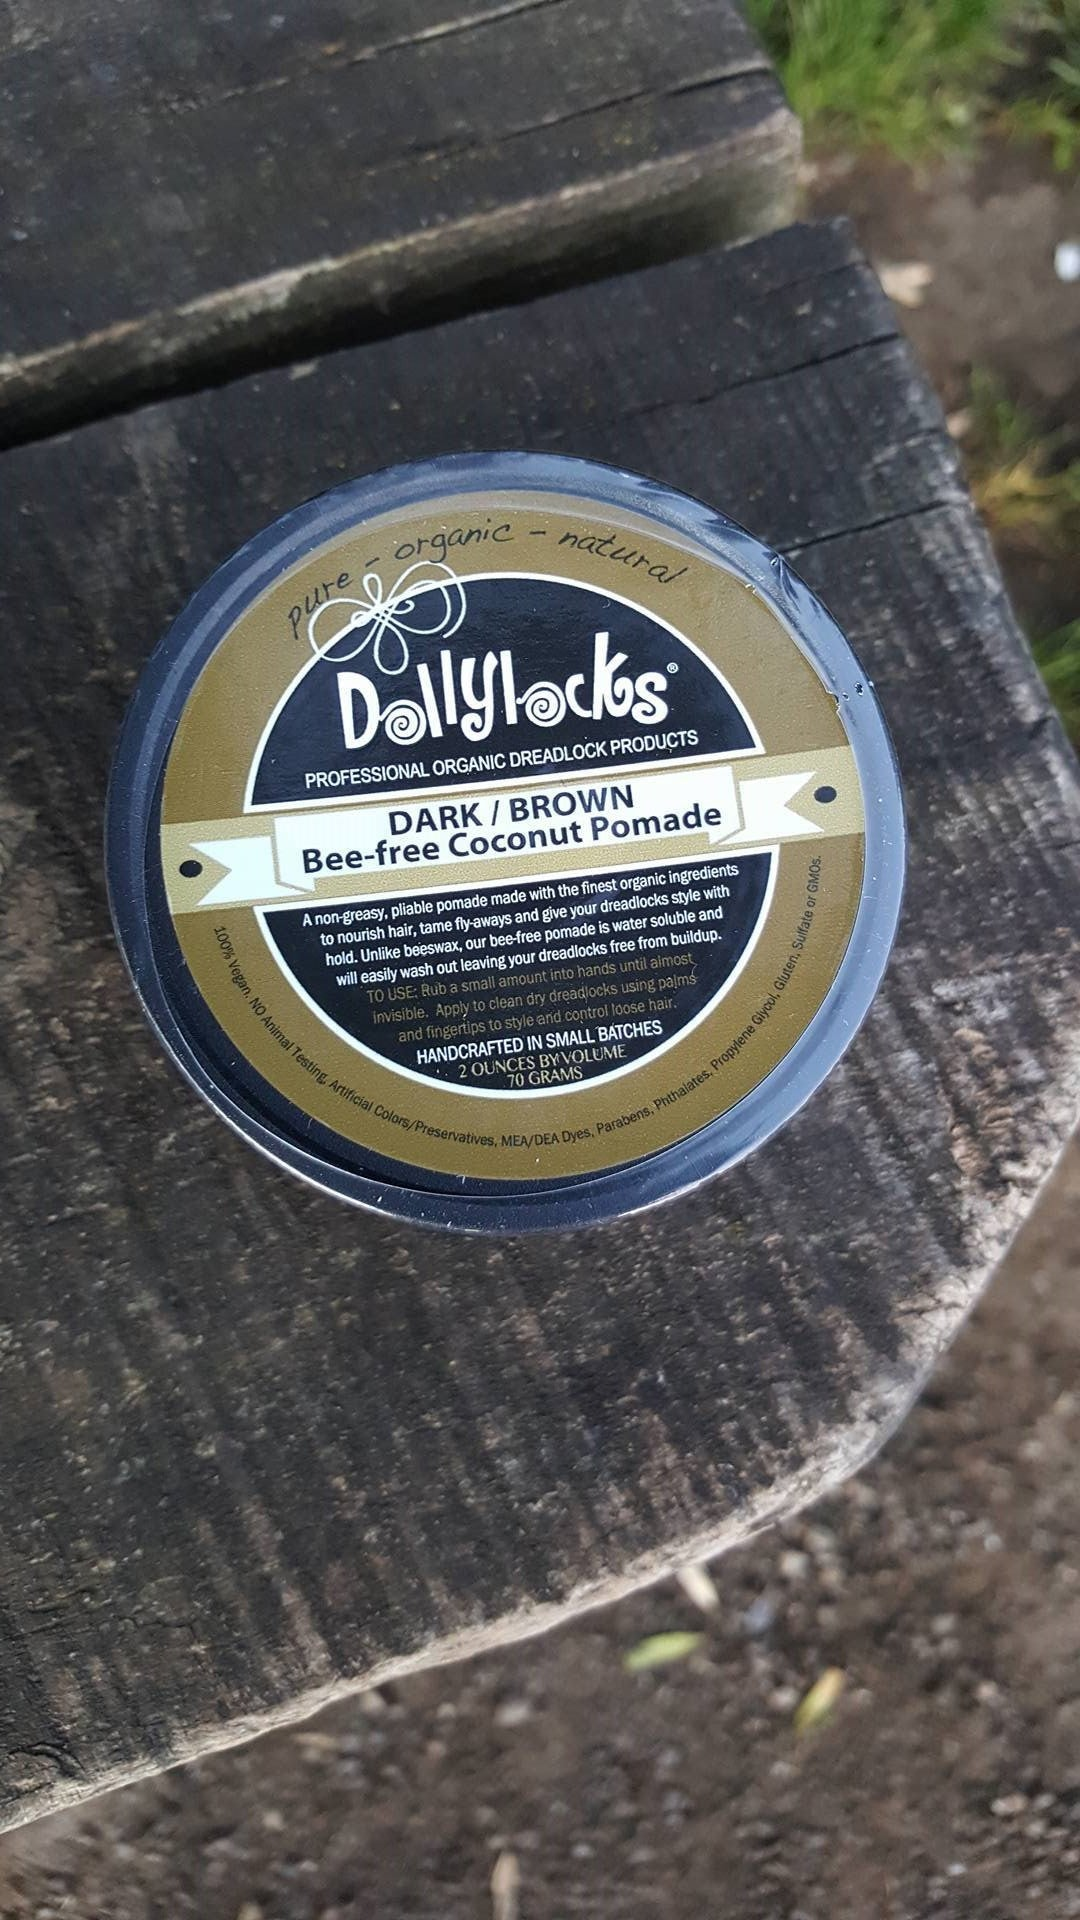 Dollylocks - Dreadlocks Pomade - 'Beeswax Alternative' (Dark/Brown 2oz/66g)